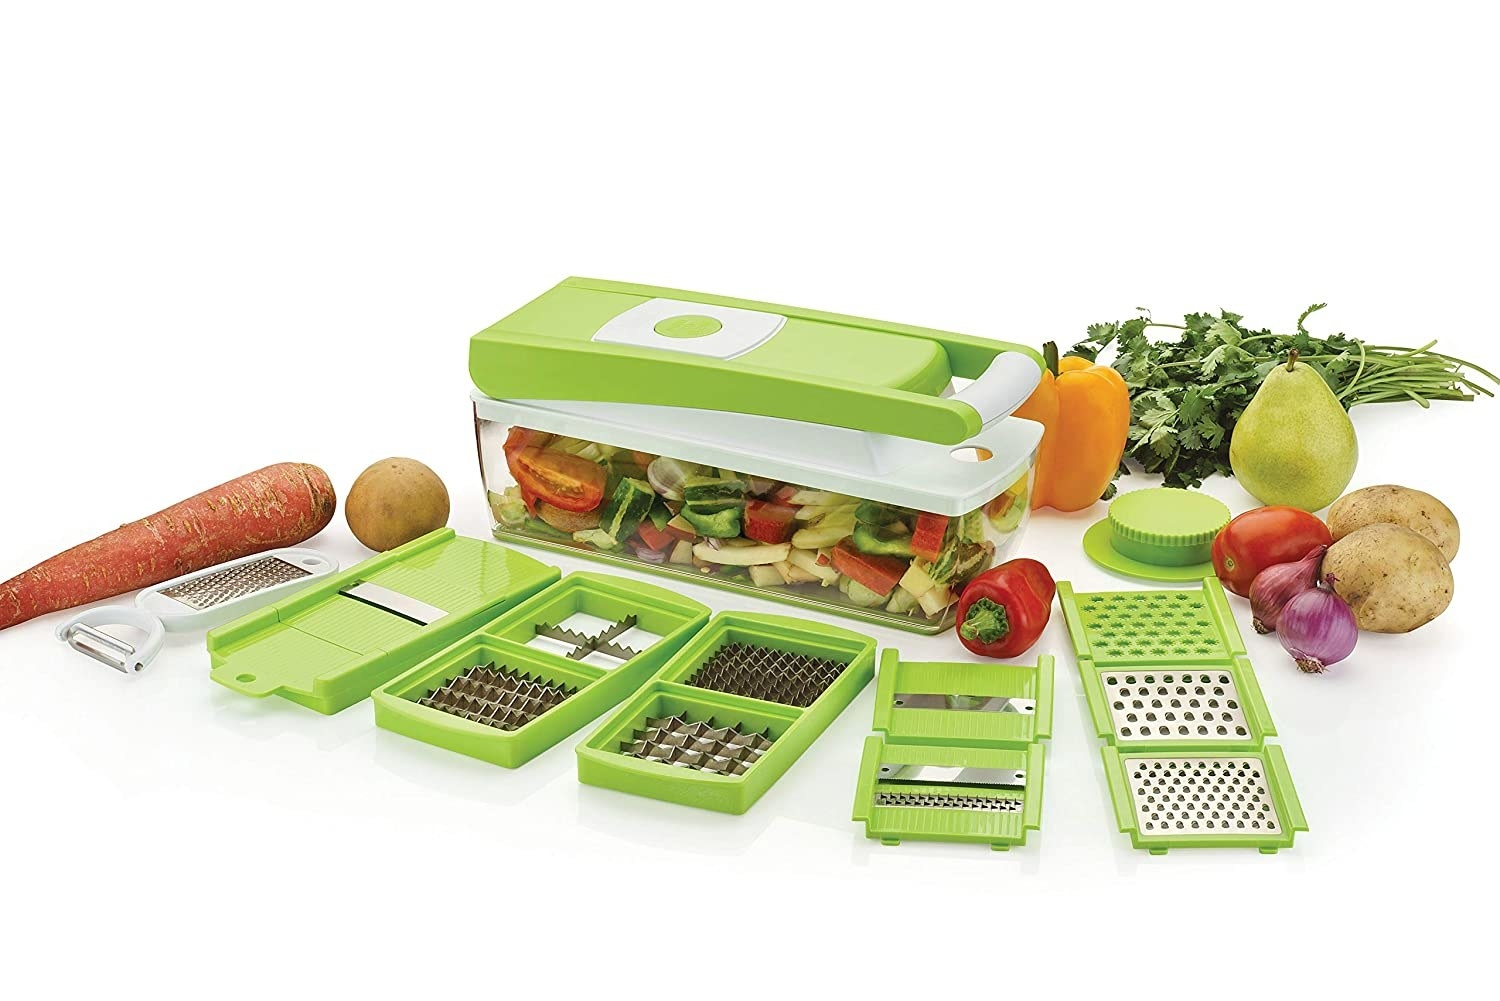 A flat lay of the 15-in-1 kitchen tool with all the different types of chopping, cutting, dicing and grating plates and a selection of vegetables.